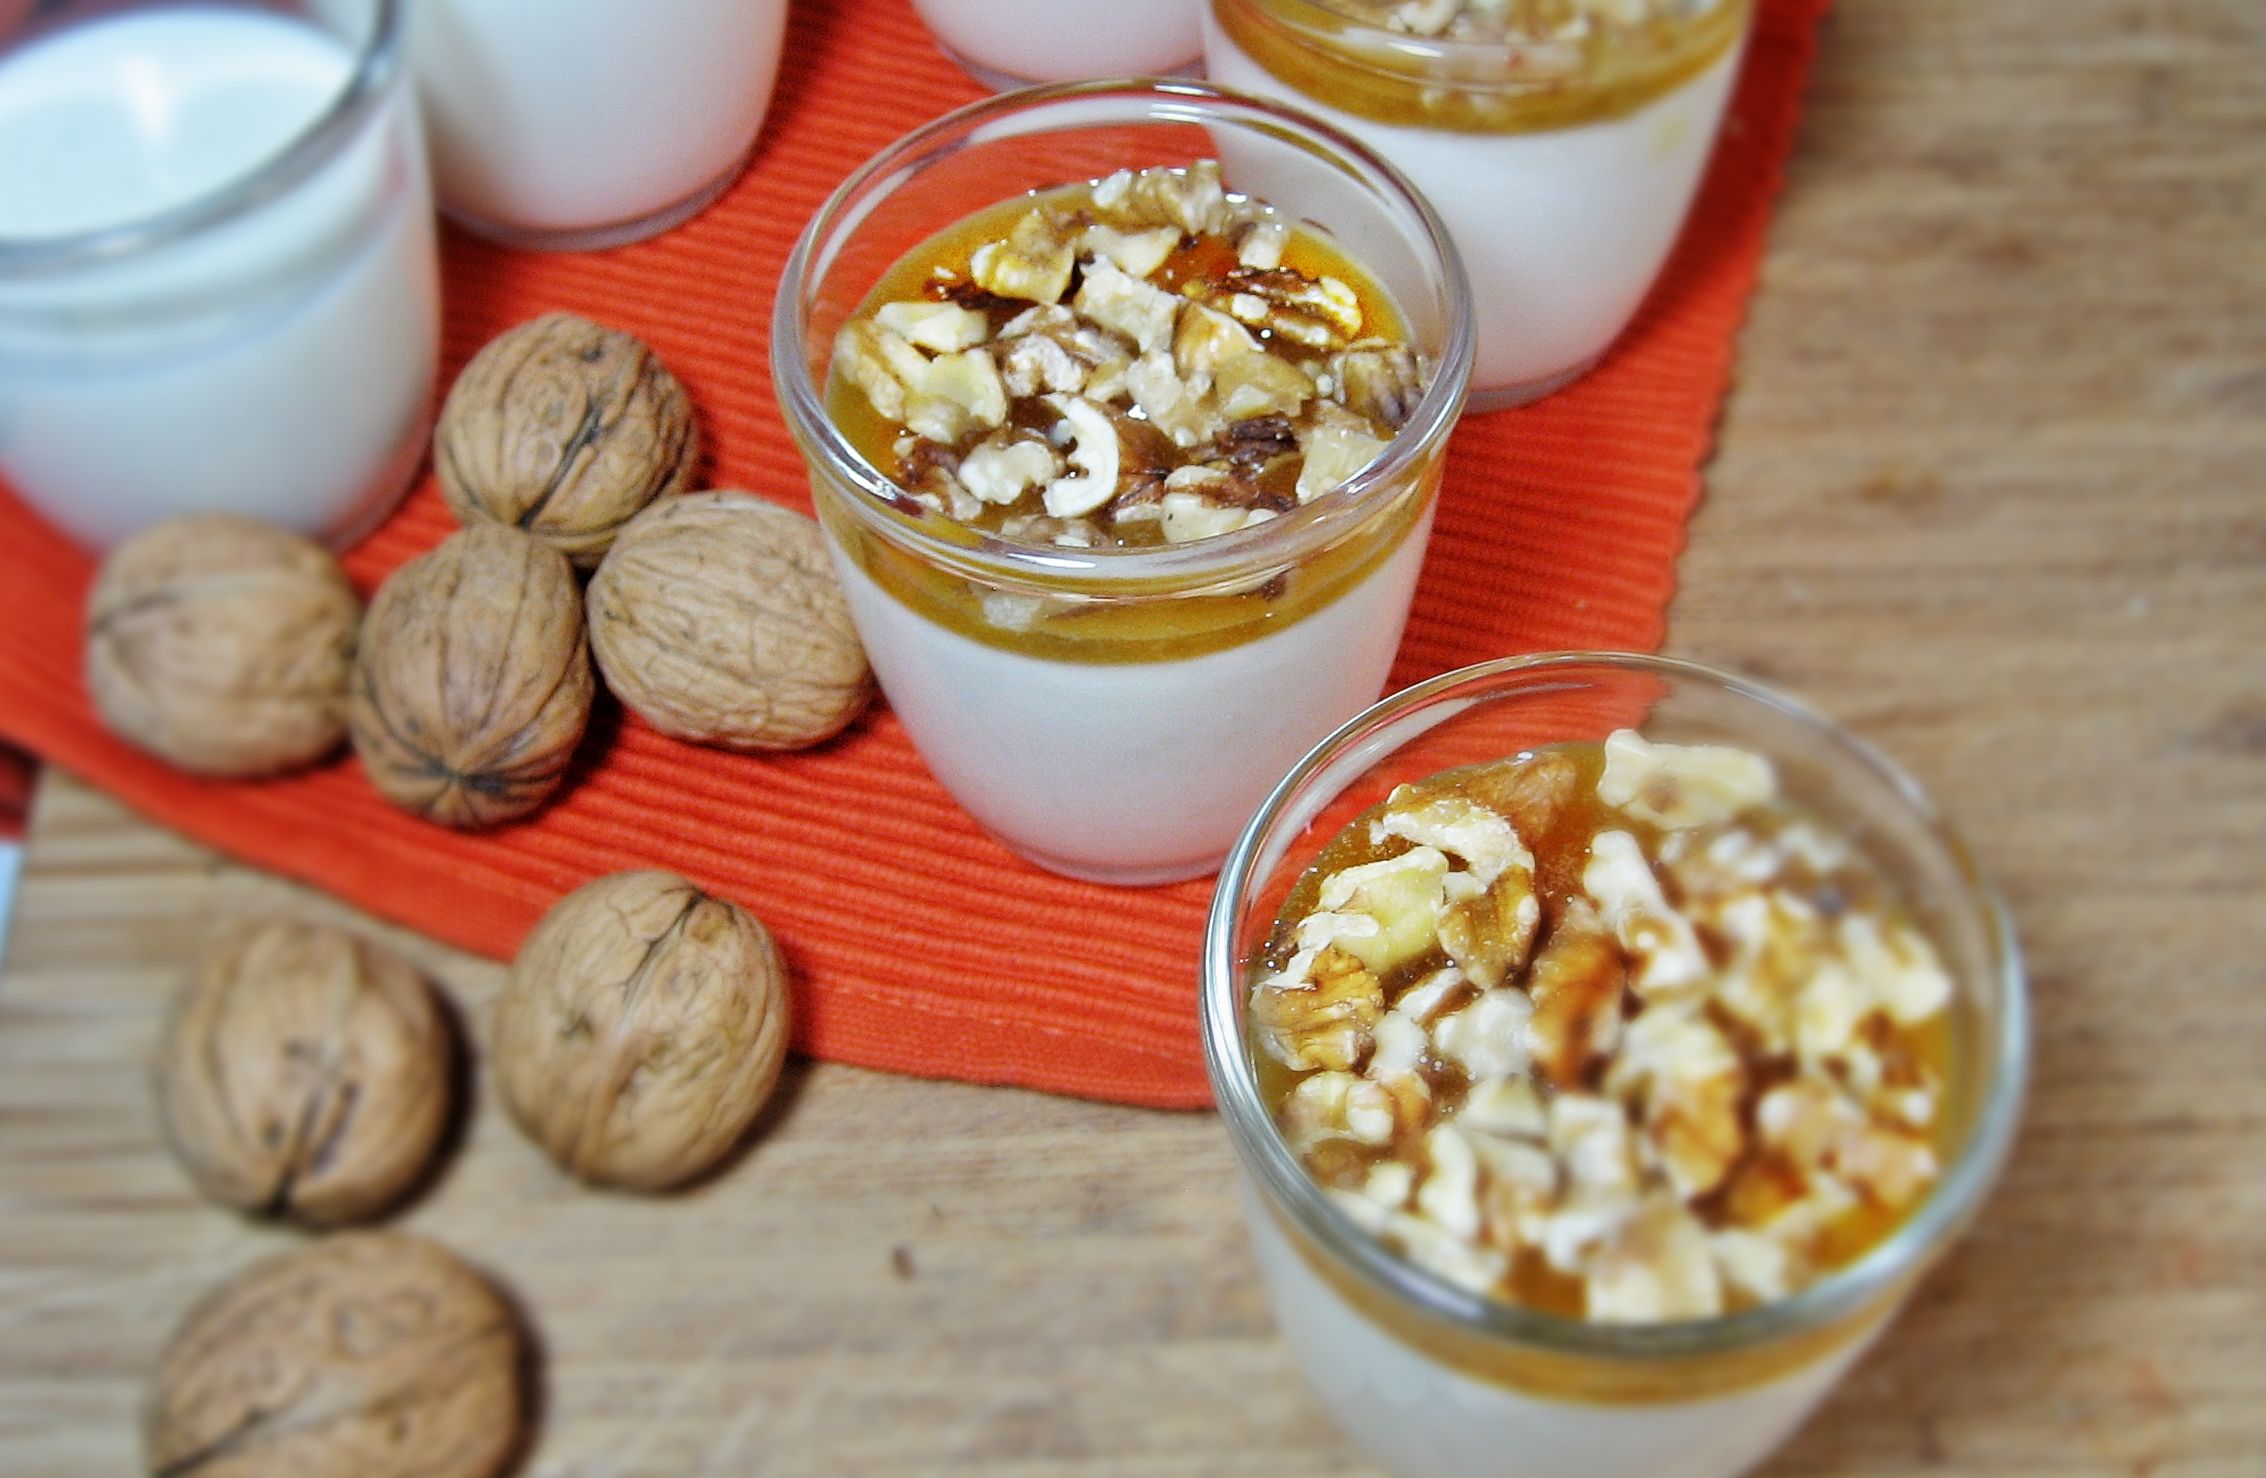 yogurt-con-miel-y-nueces